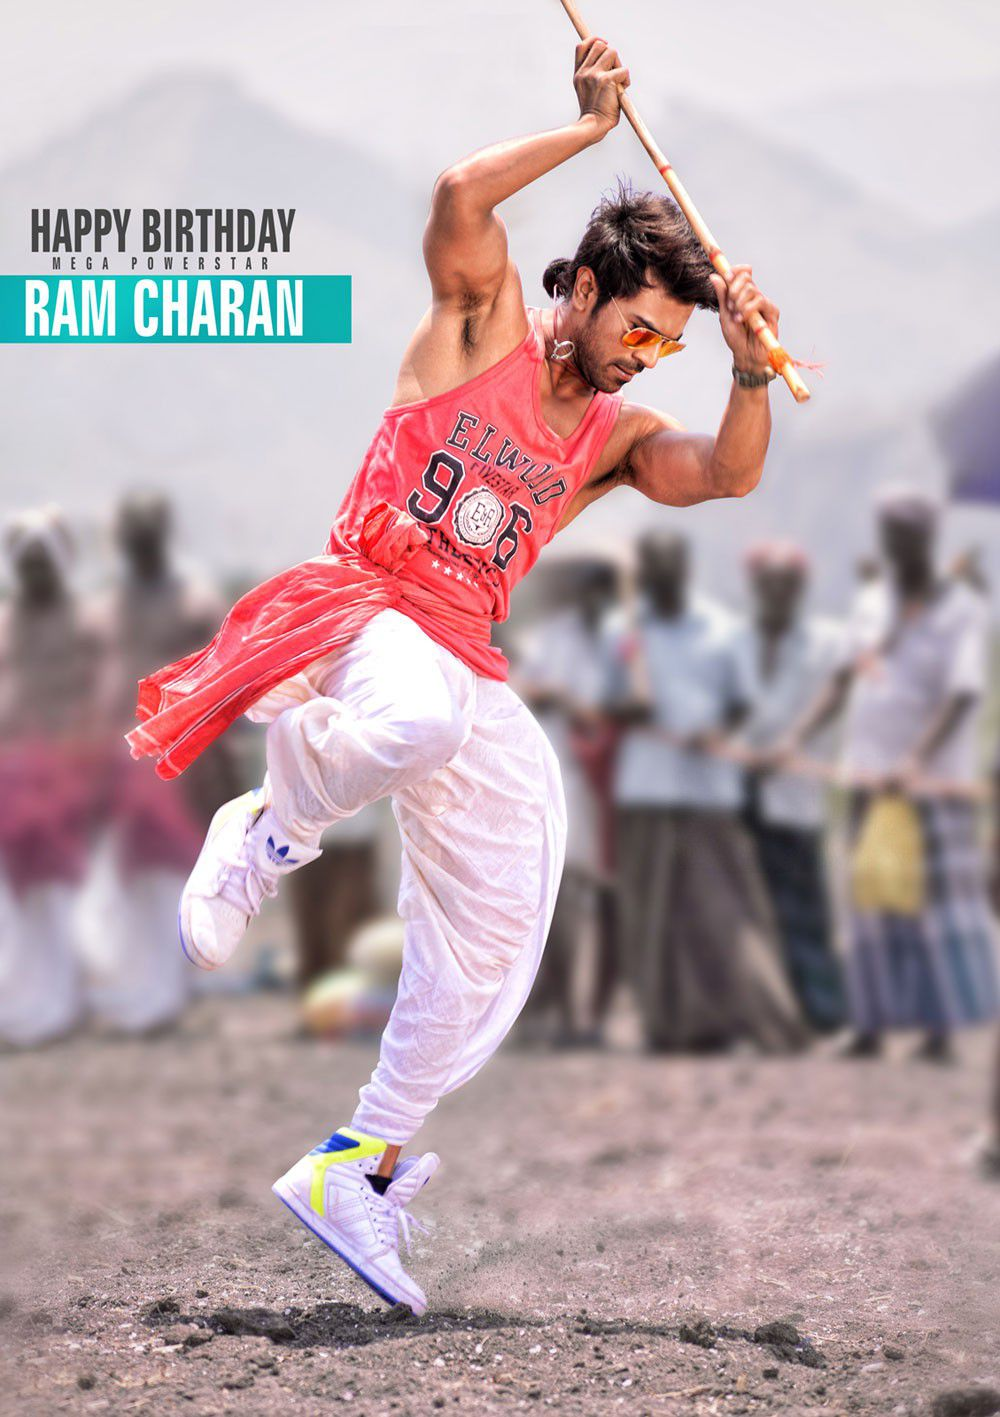 Ram charan in Krishna Vamsi movie